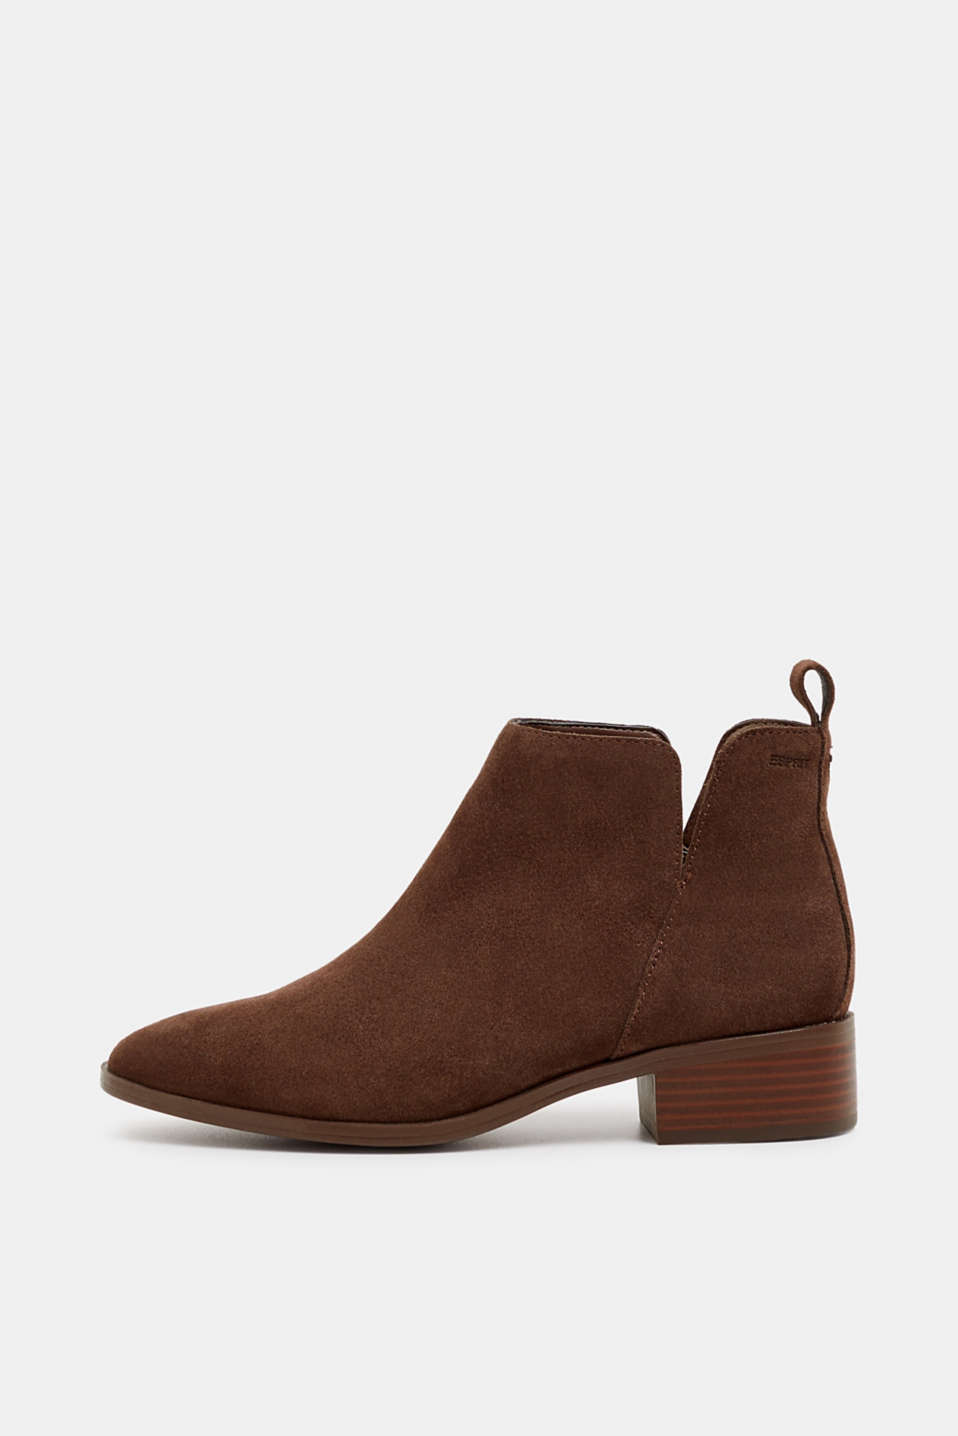 Esprit - Bottines en cuir velours